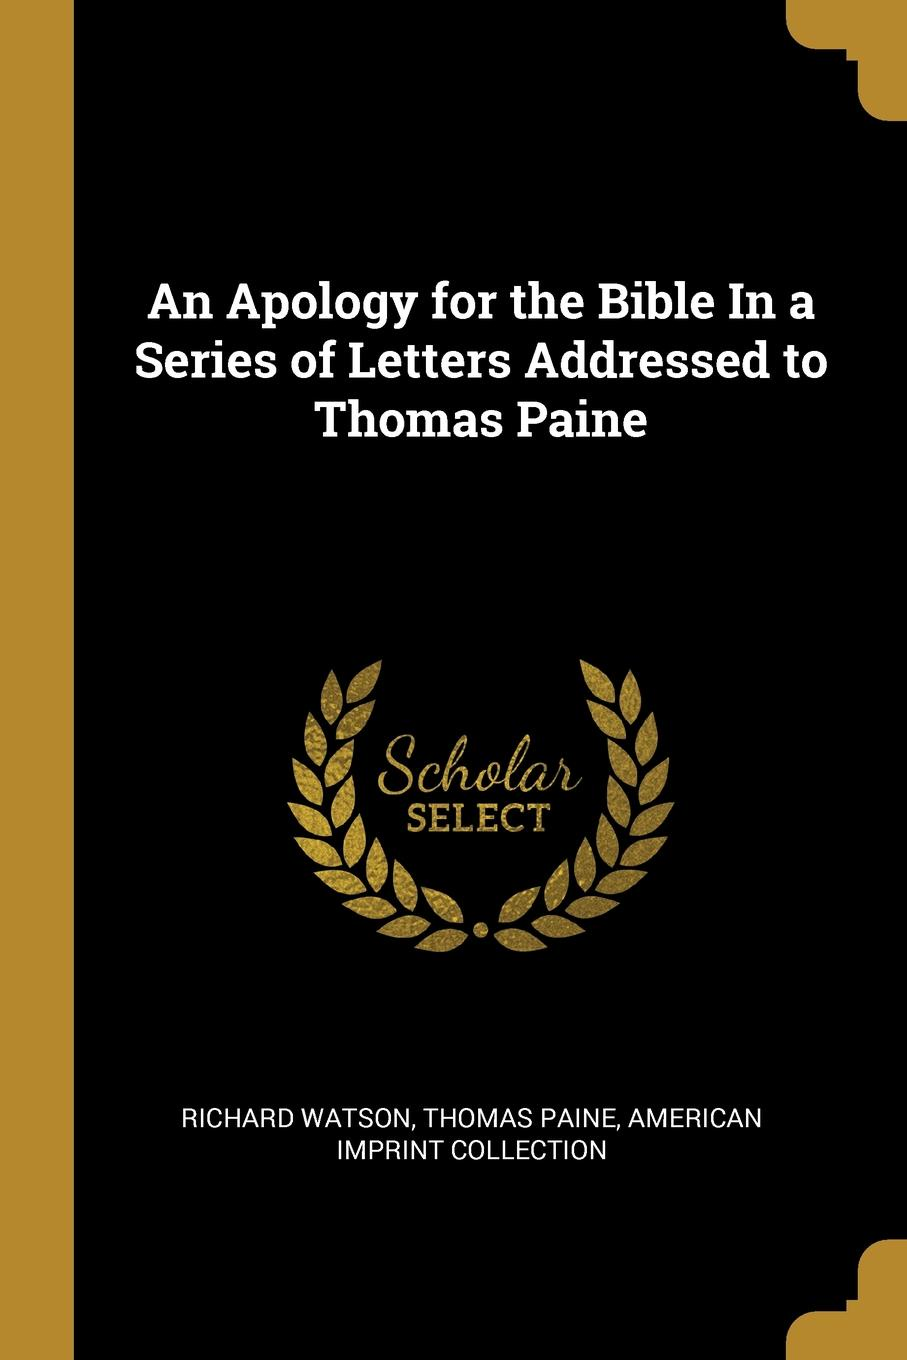 Thomas Paine American Imprint C Watson. An Apology for the Bible In a Series of Letters Addressed to Thomas Paine